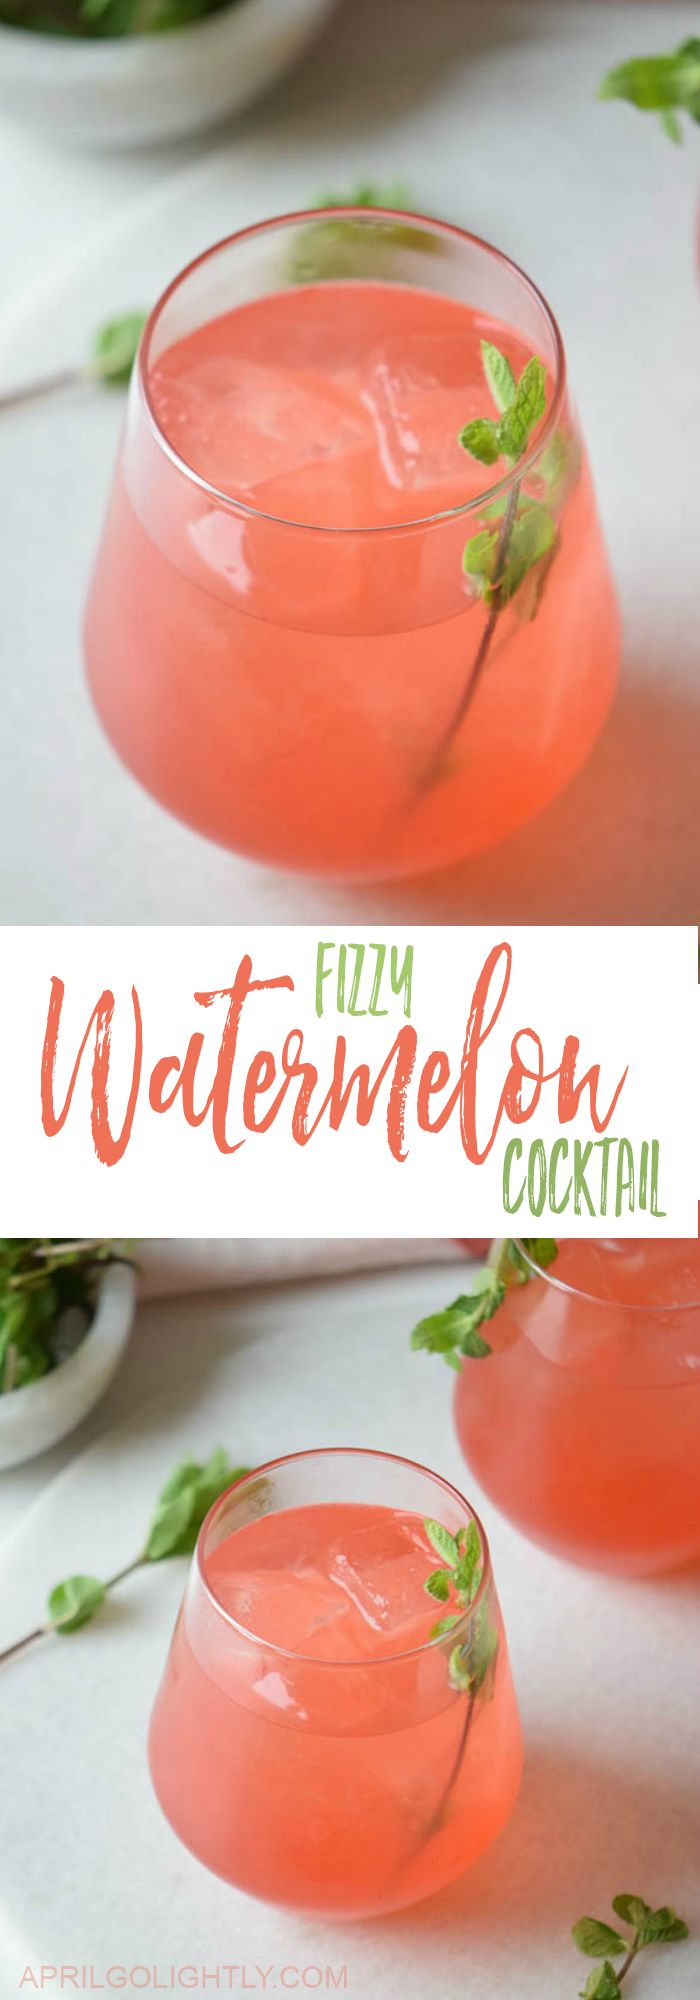 Watermelon Beer Cocktail Recipe made with lemon juice and sugar